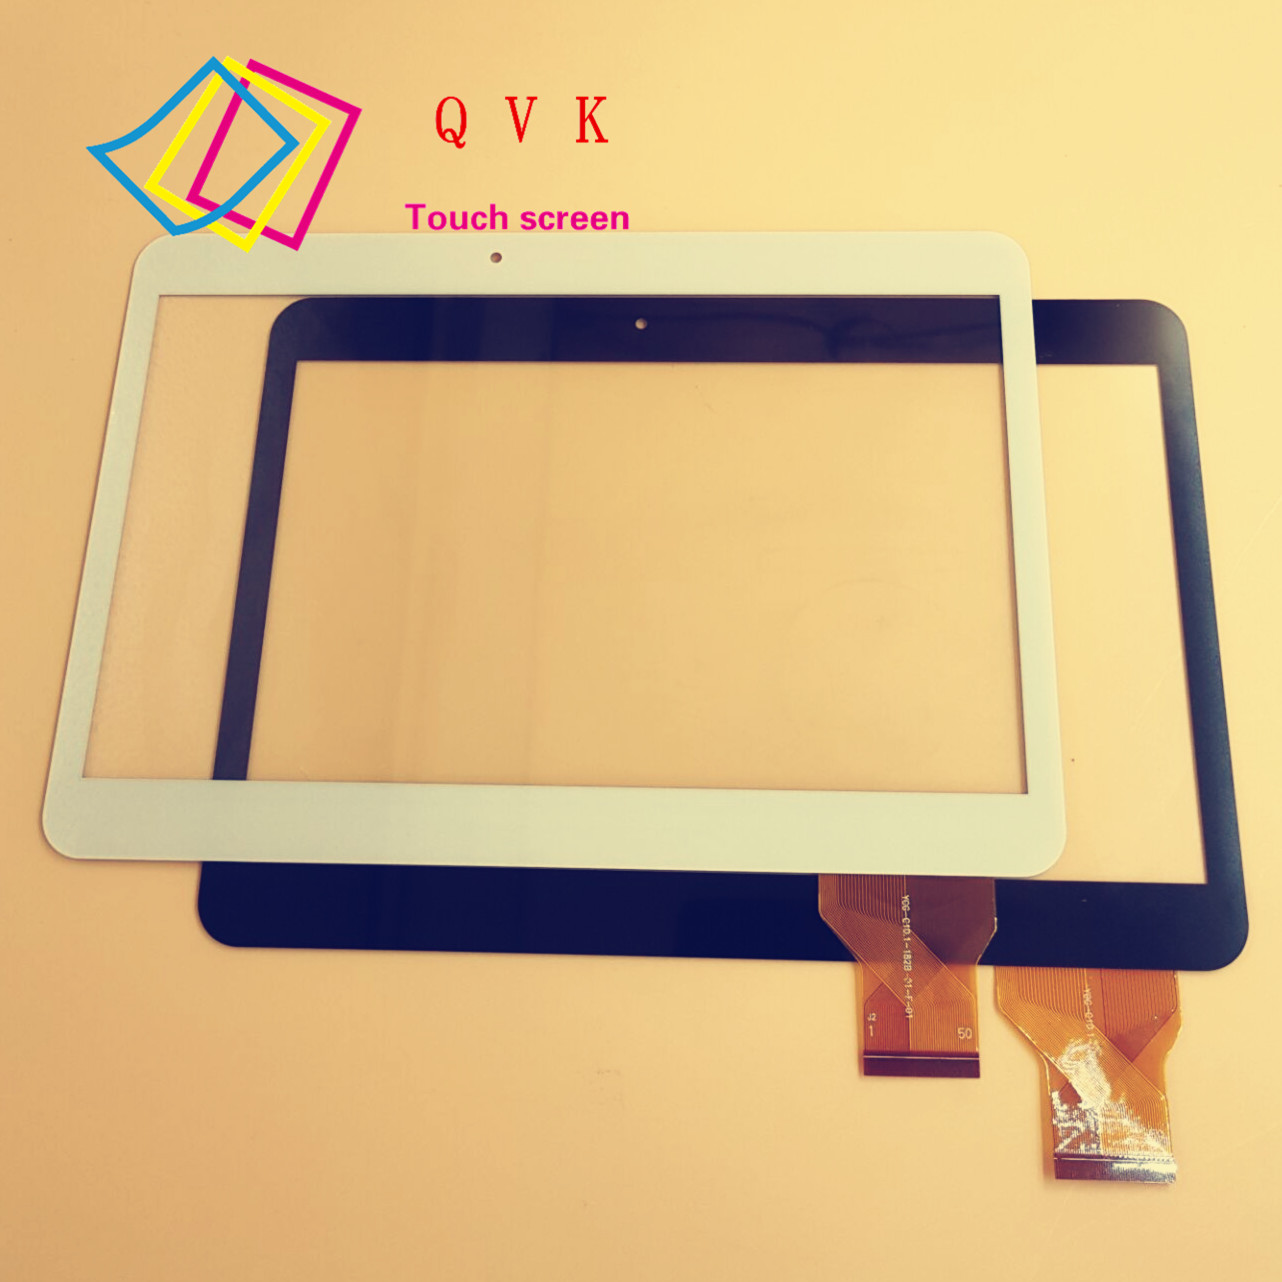 Black white For IRBIS TZ11 TZ12 10.1inch tablet pc capacitive touch screen panel digitizer glass VTC5010A28-FPC-1.0 replacement lcd digitizer capacitive touch screen for lg vs980 f320 d801 d803 black